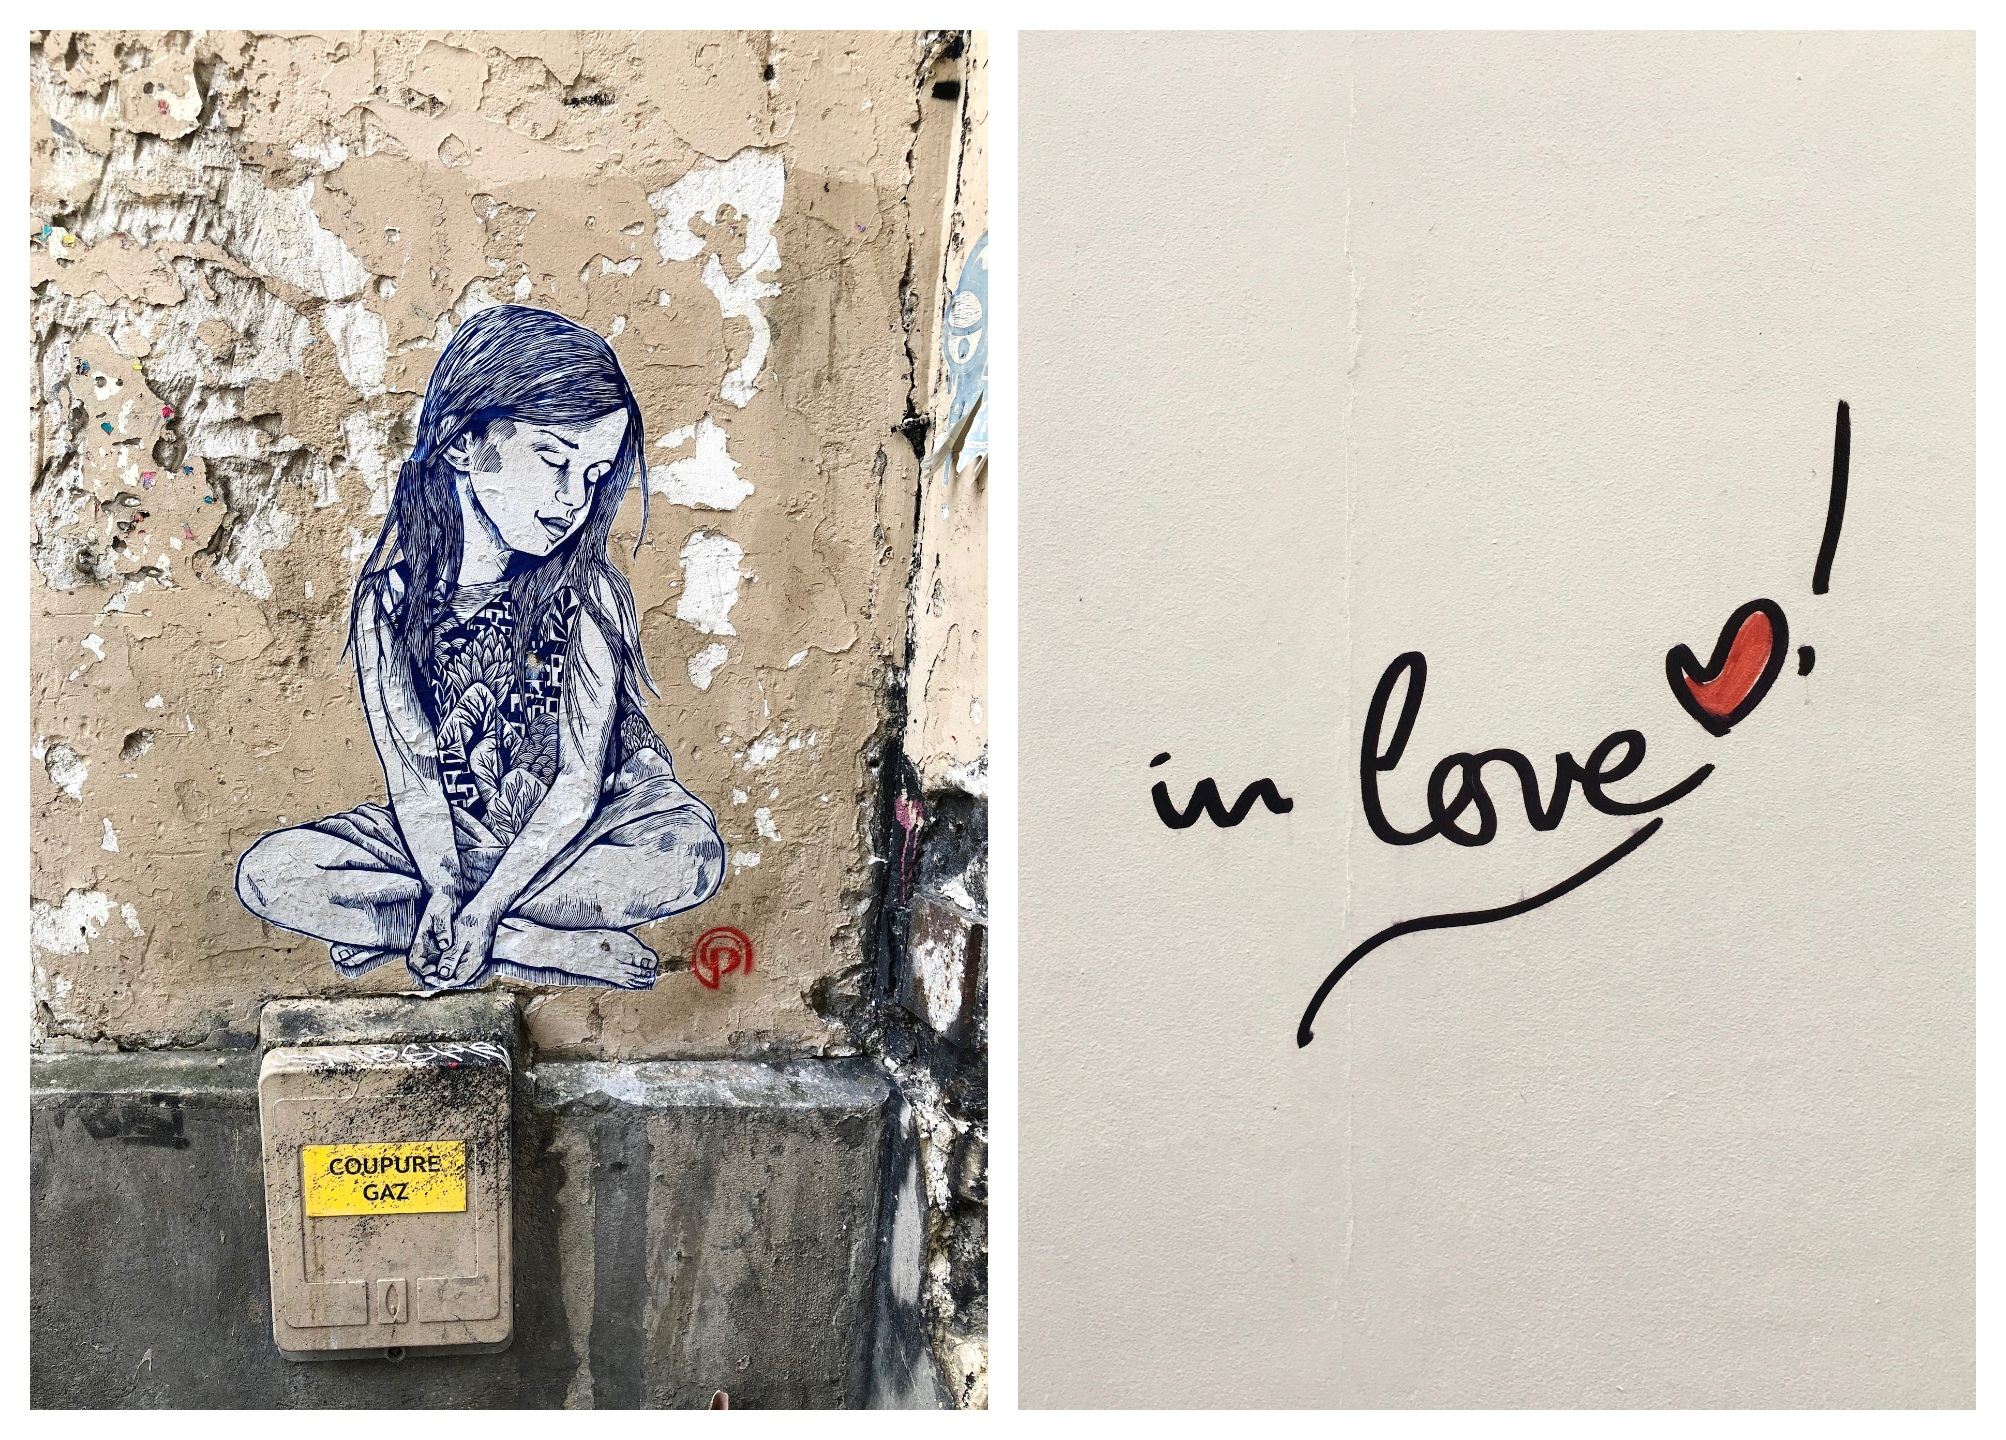 Street art in Paris is very diverse and includes the works of many different artists from all over the world from frescoes to stencil art like this piece of a little girl sitting cross-legged (left), and phrases like those by 'In Love' seen more recently, (right).